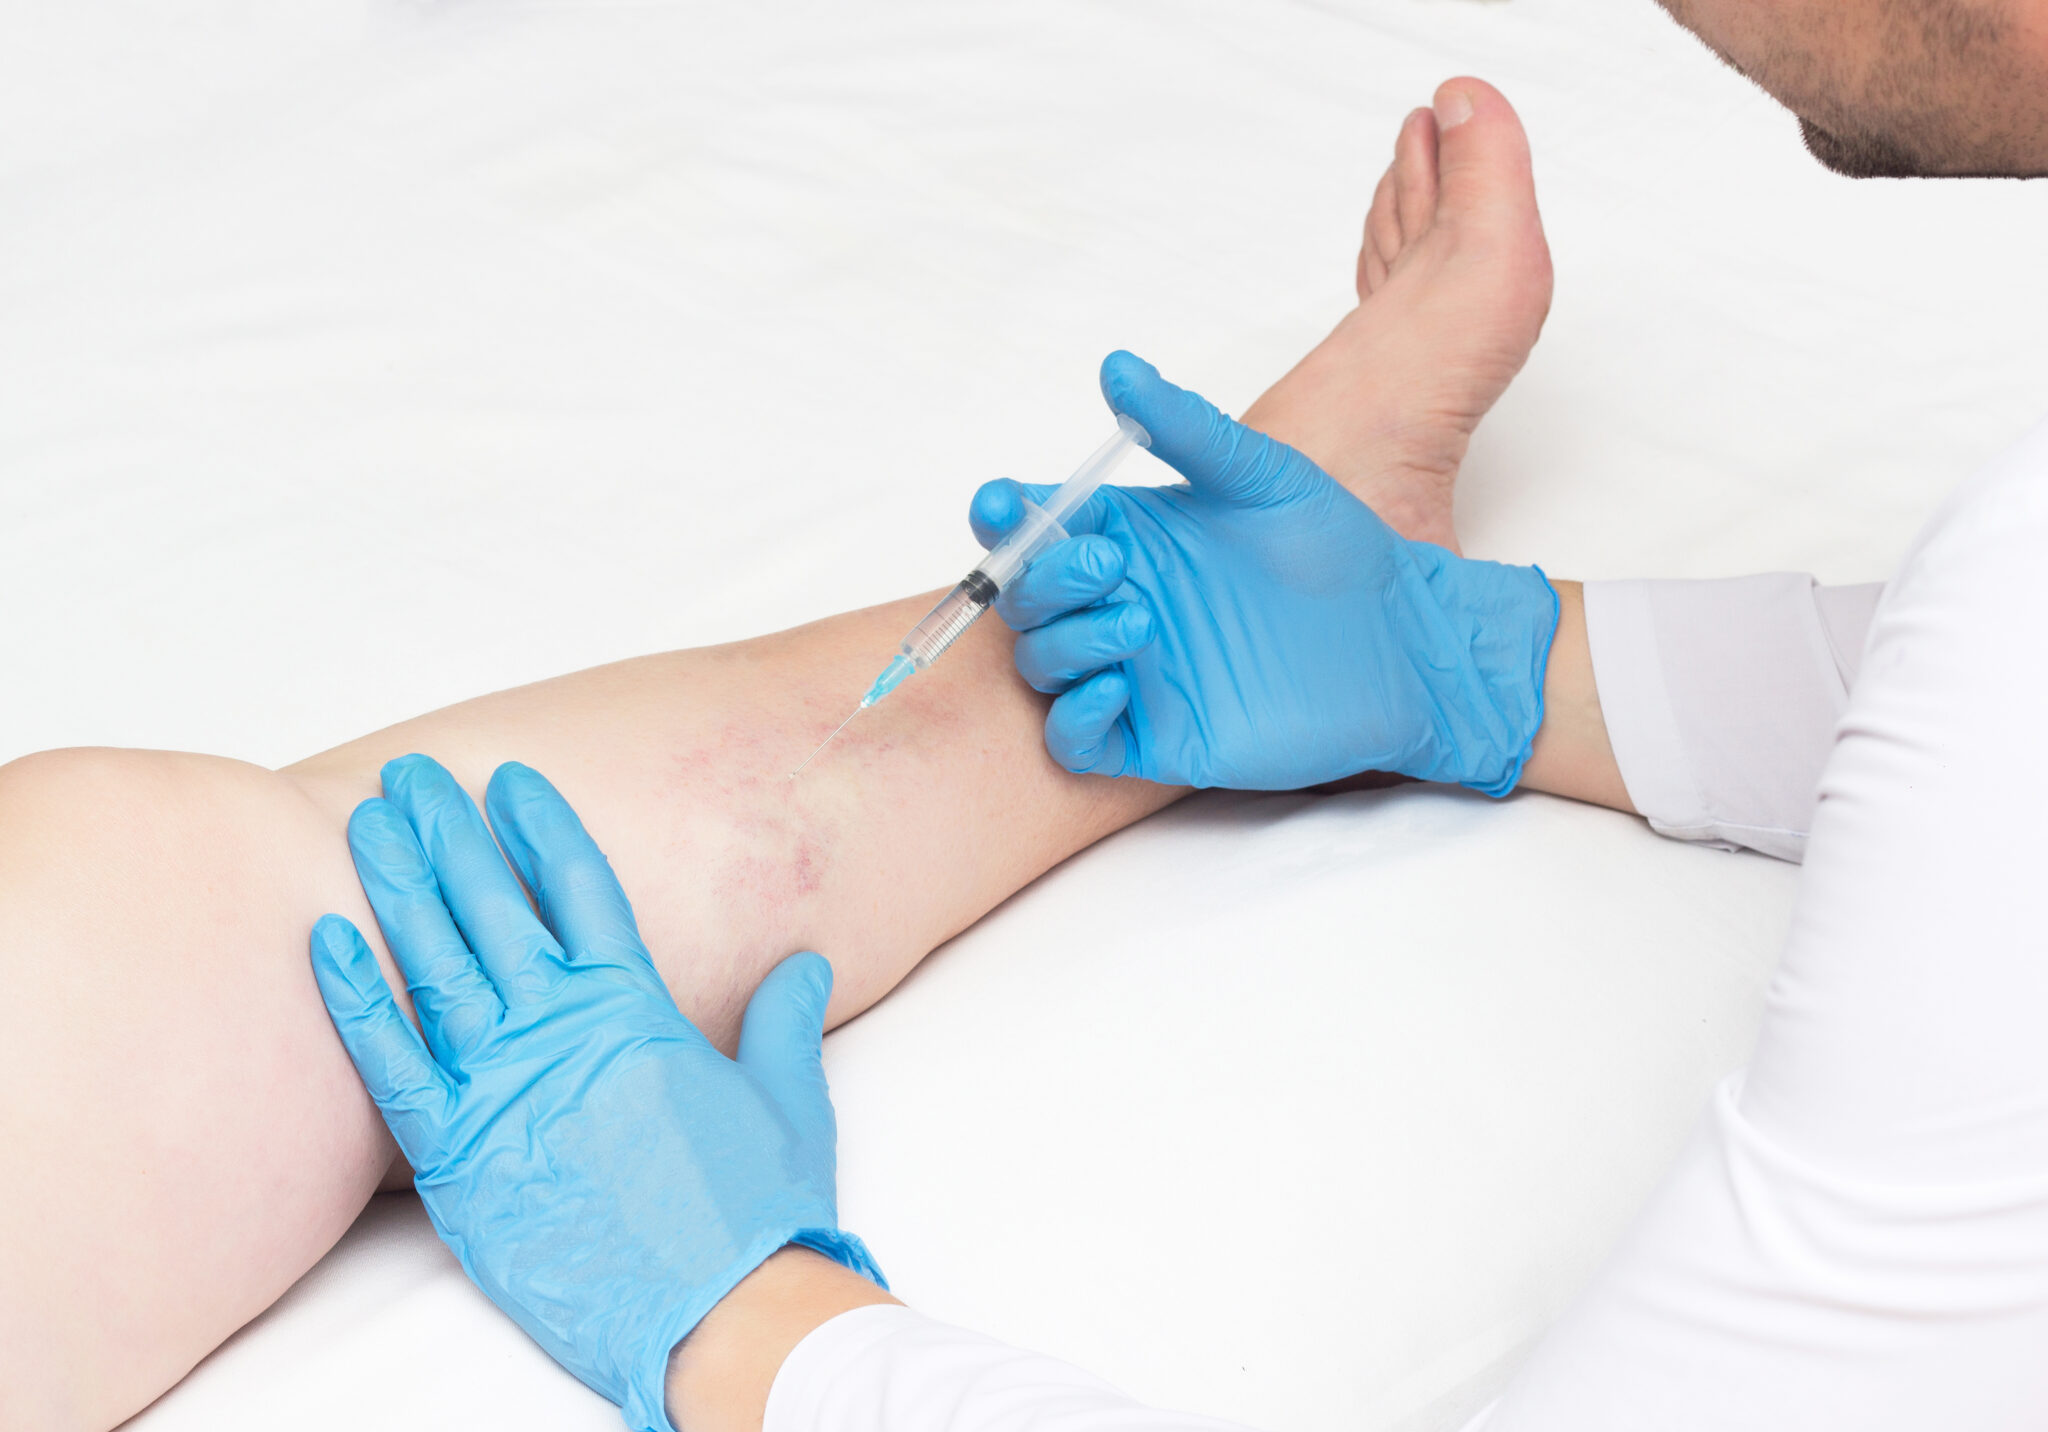 You deserve the best care available for your body. Unfortunately, if you are not a medical professional, you may not know what to look for when selecting the right vein treatment center with the right vein doctors to treat your spider and varicose veins. But don't worry; we are here to help. Keep reading to find out the eight qualities that the best vein specialists have so you can know who to go to for your treatment!